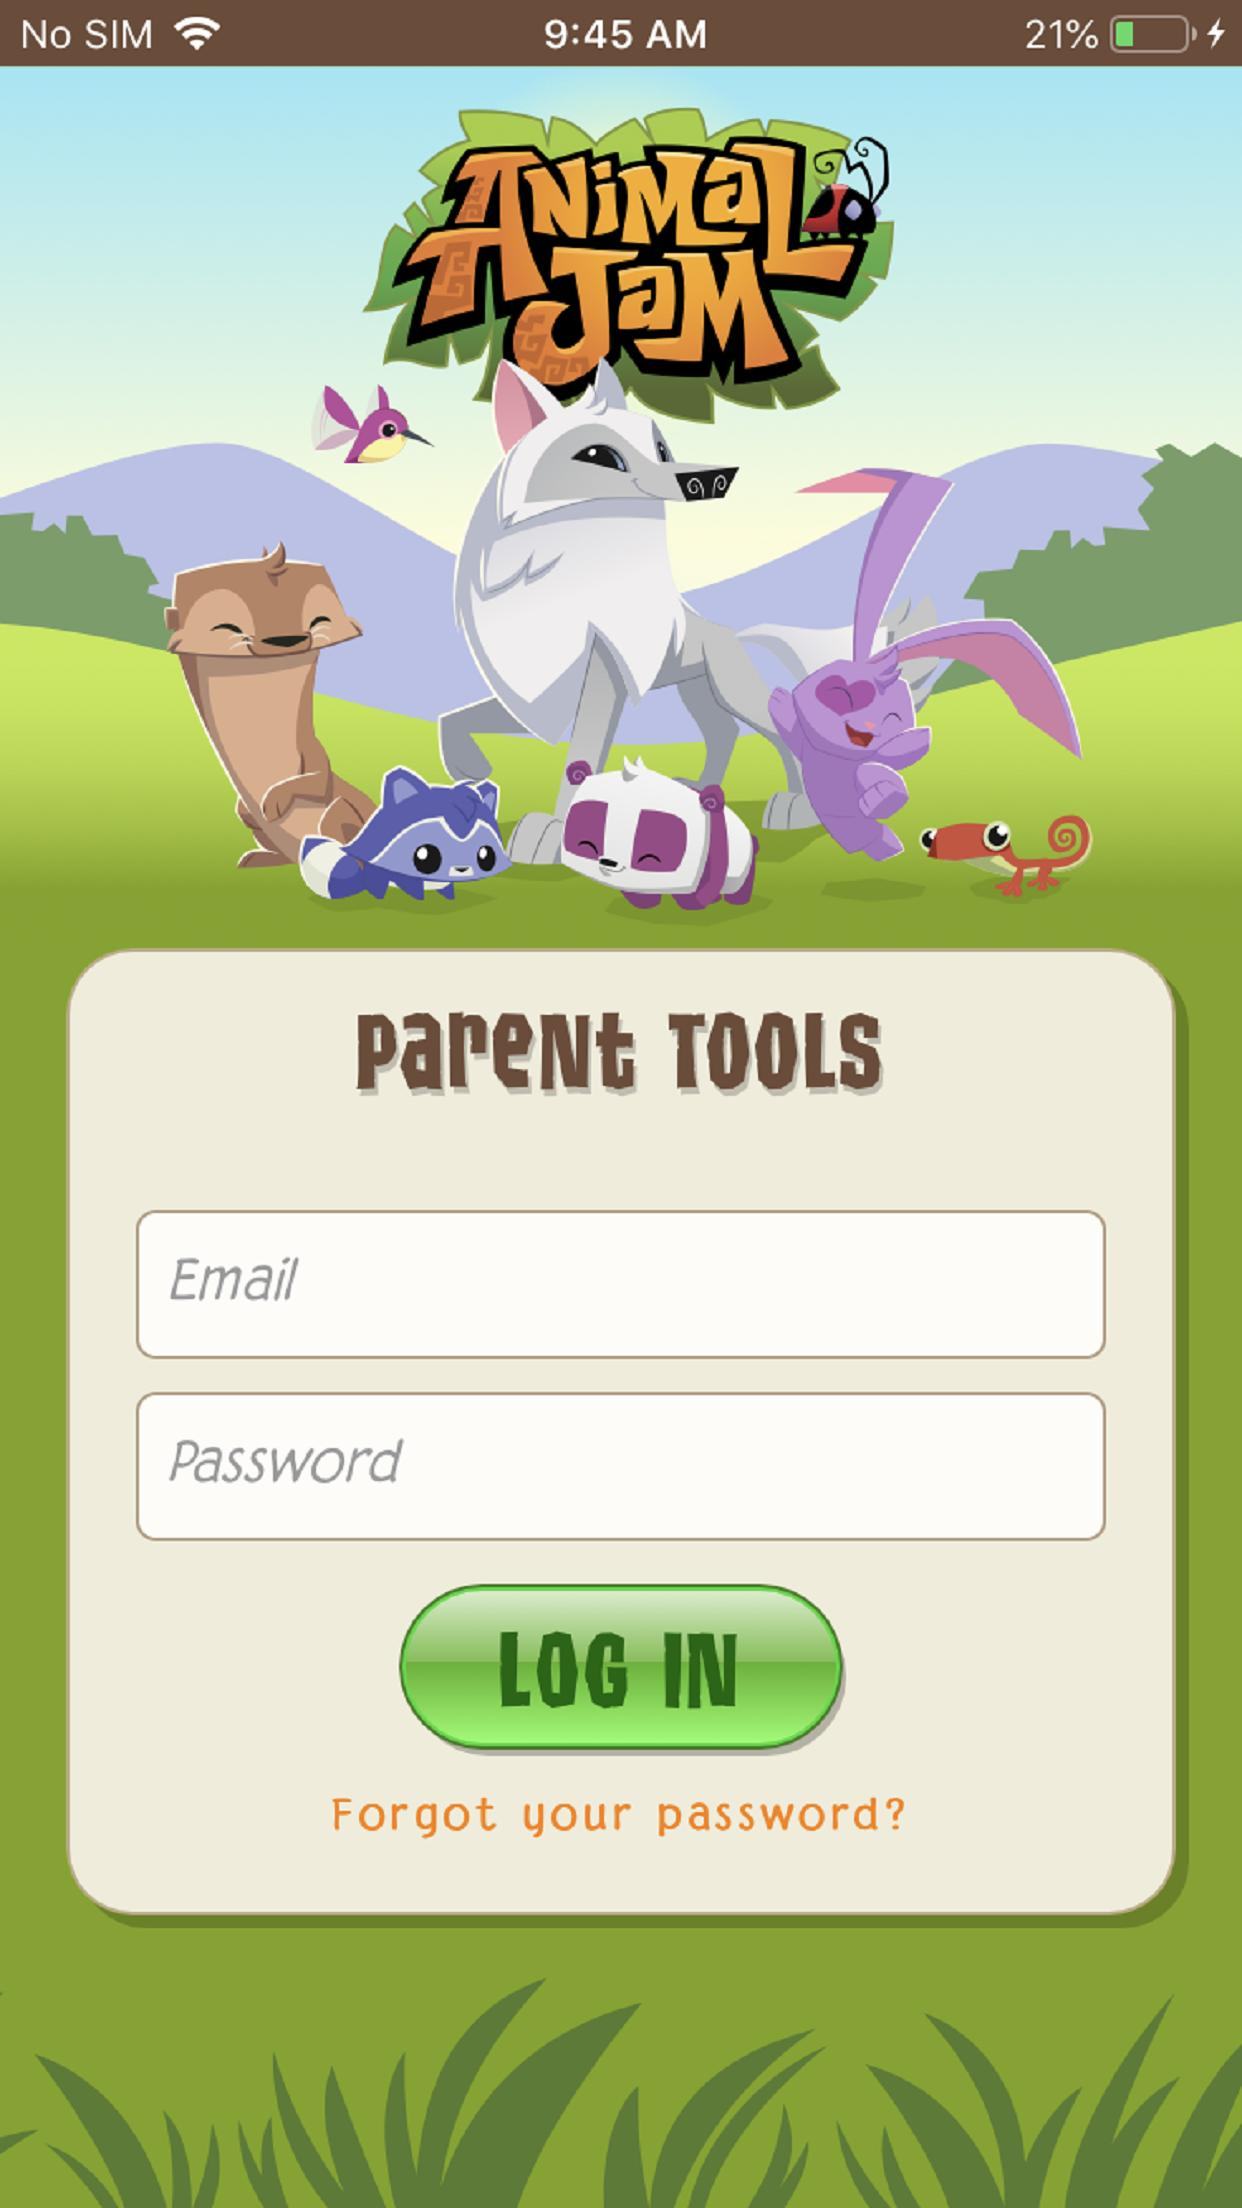 Animal Jam Parent Tools for Android - APK Download